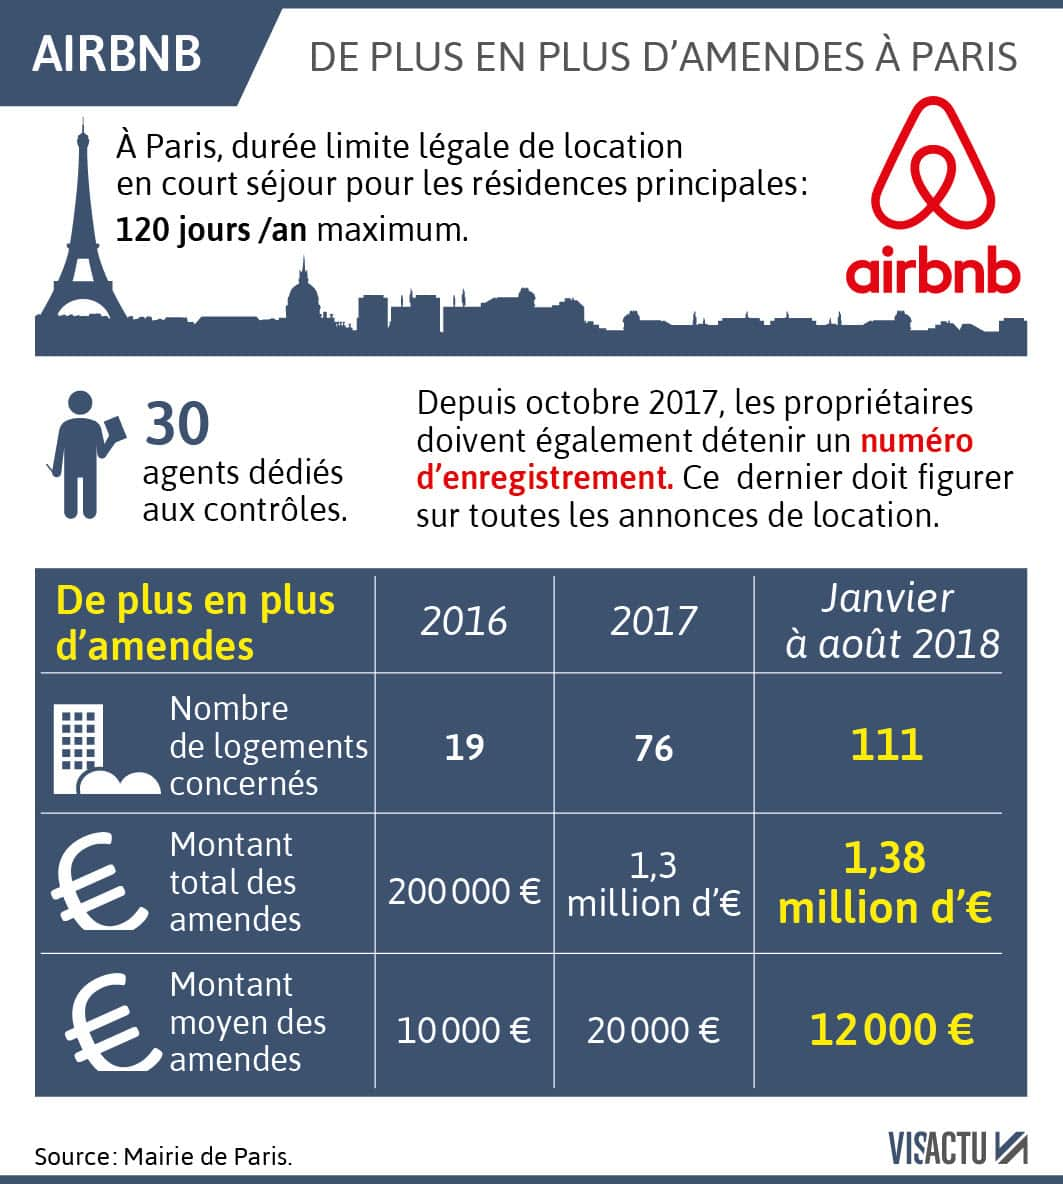 Sous-location Airbnb